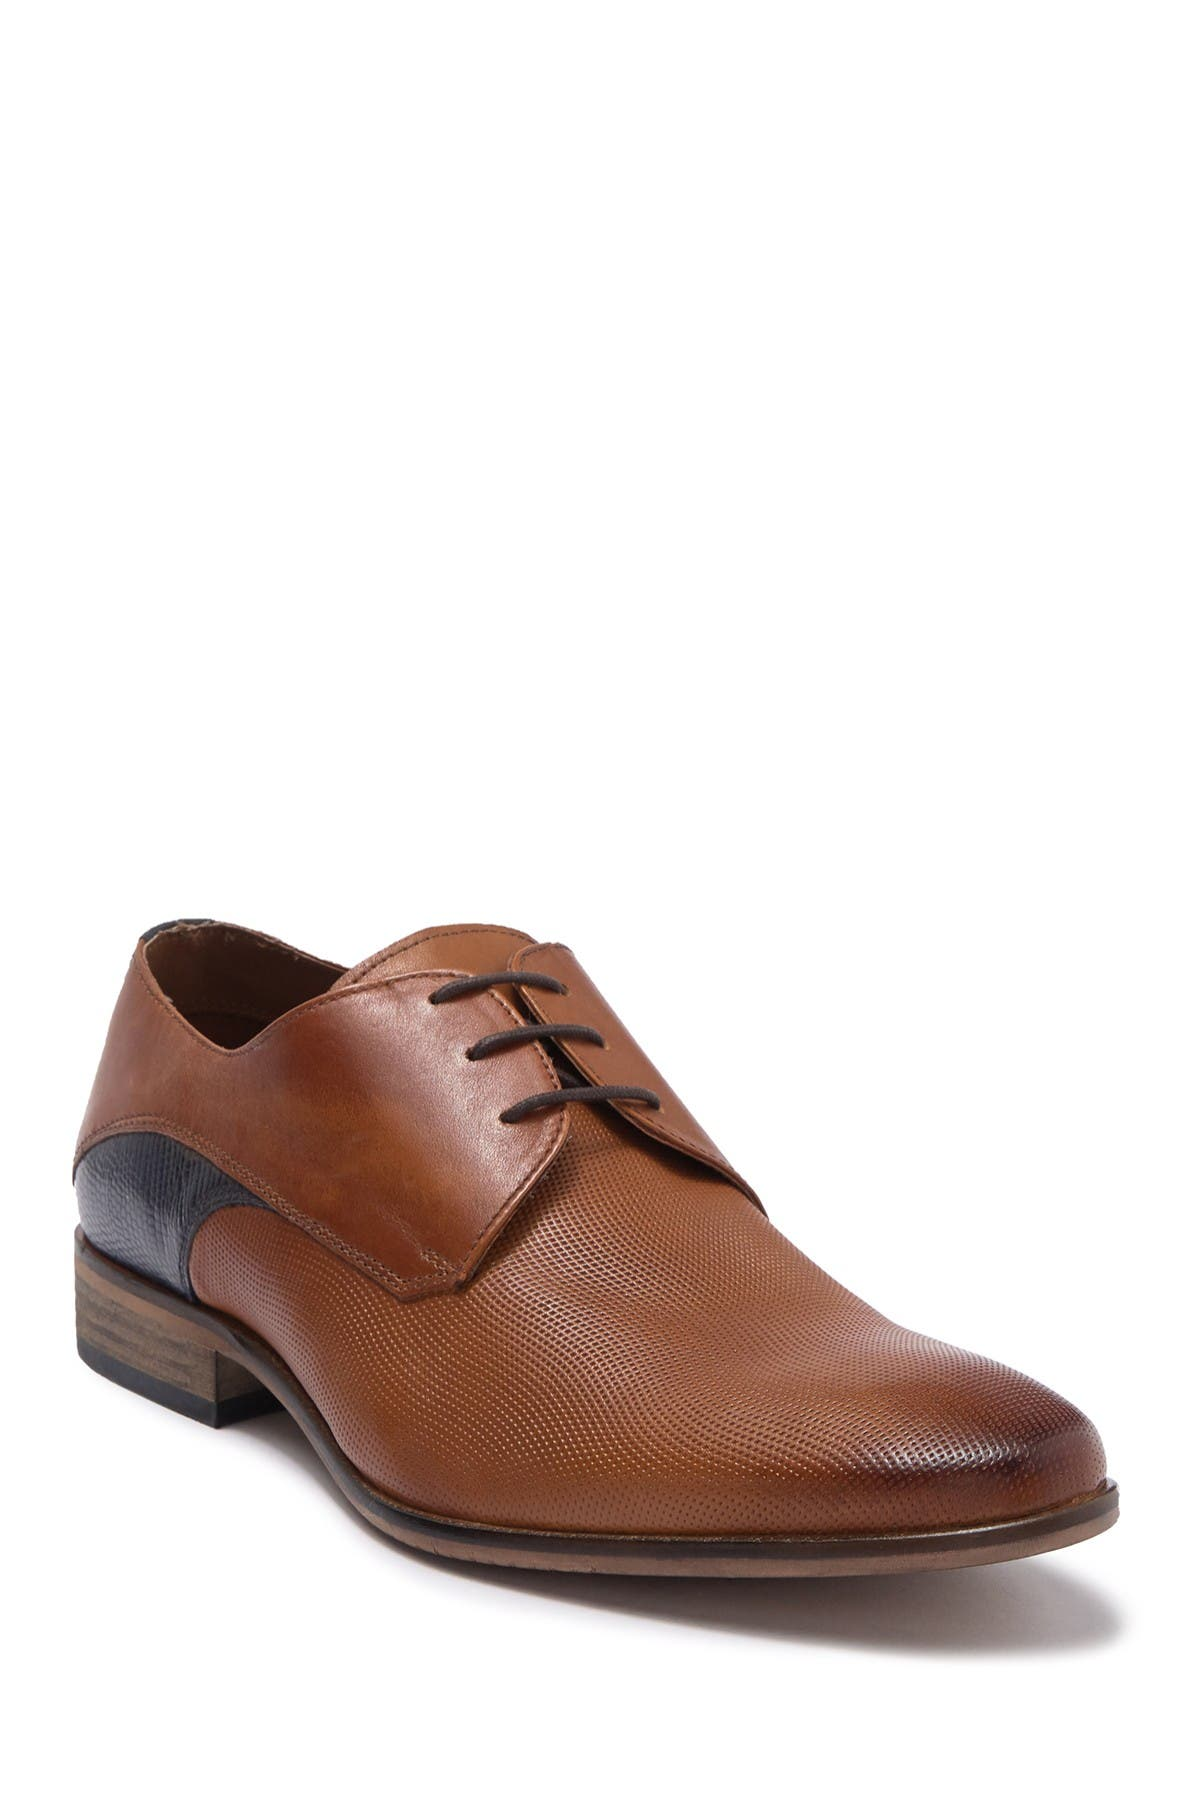 Image of Kenneth Cole Reaction Fin Lace-Up Shoe